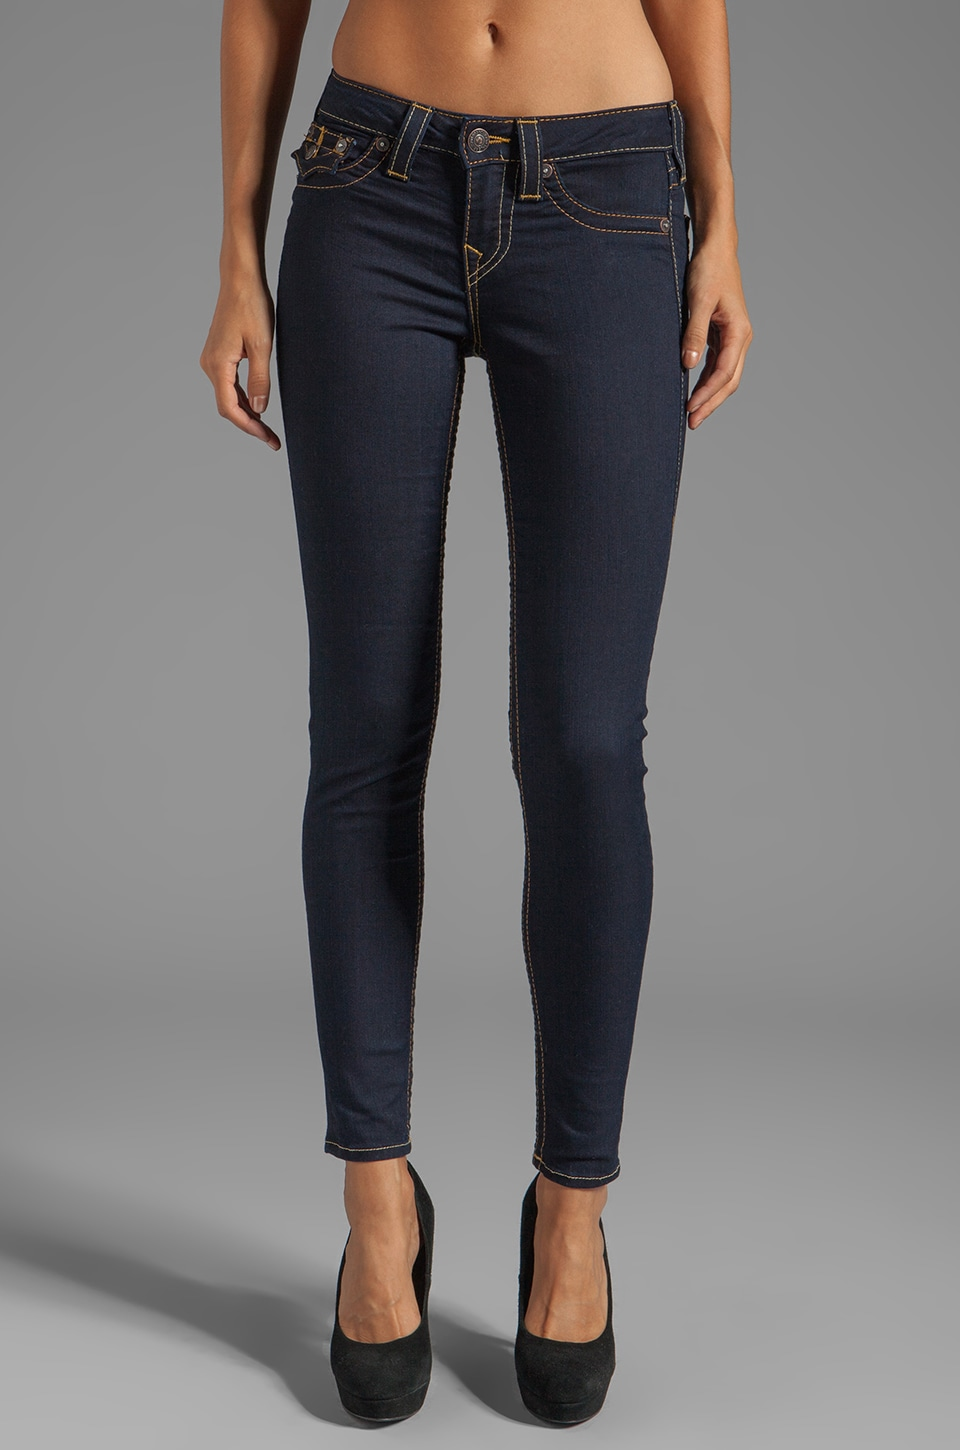 True Religion Serena High Rise Super Skinny in Iron Black